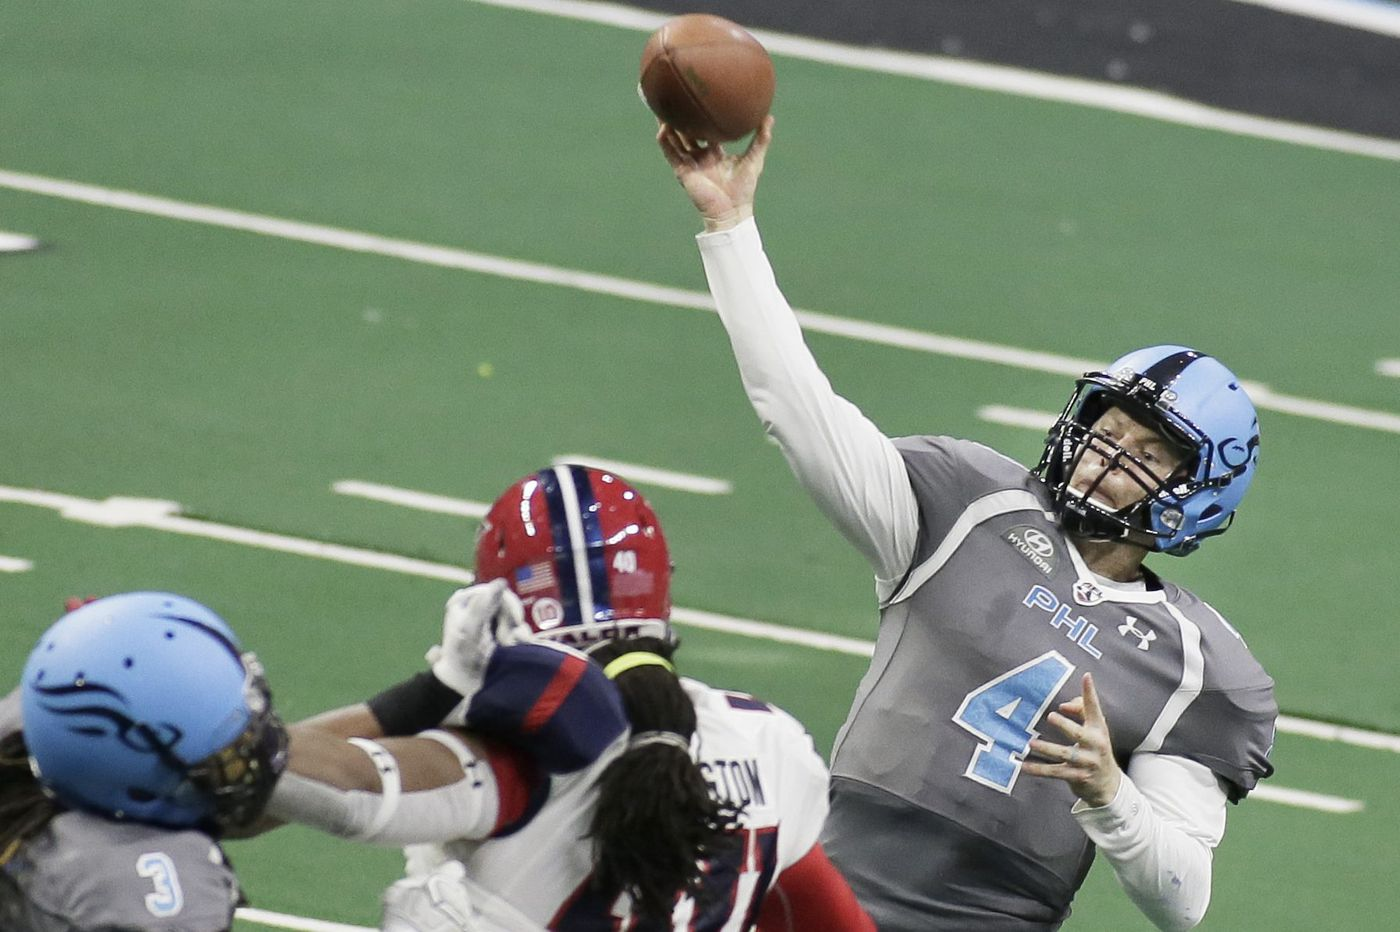 Soul owner Ron Jaworski believes the Arena Football League, down to